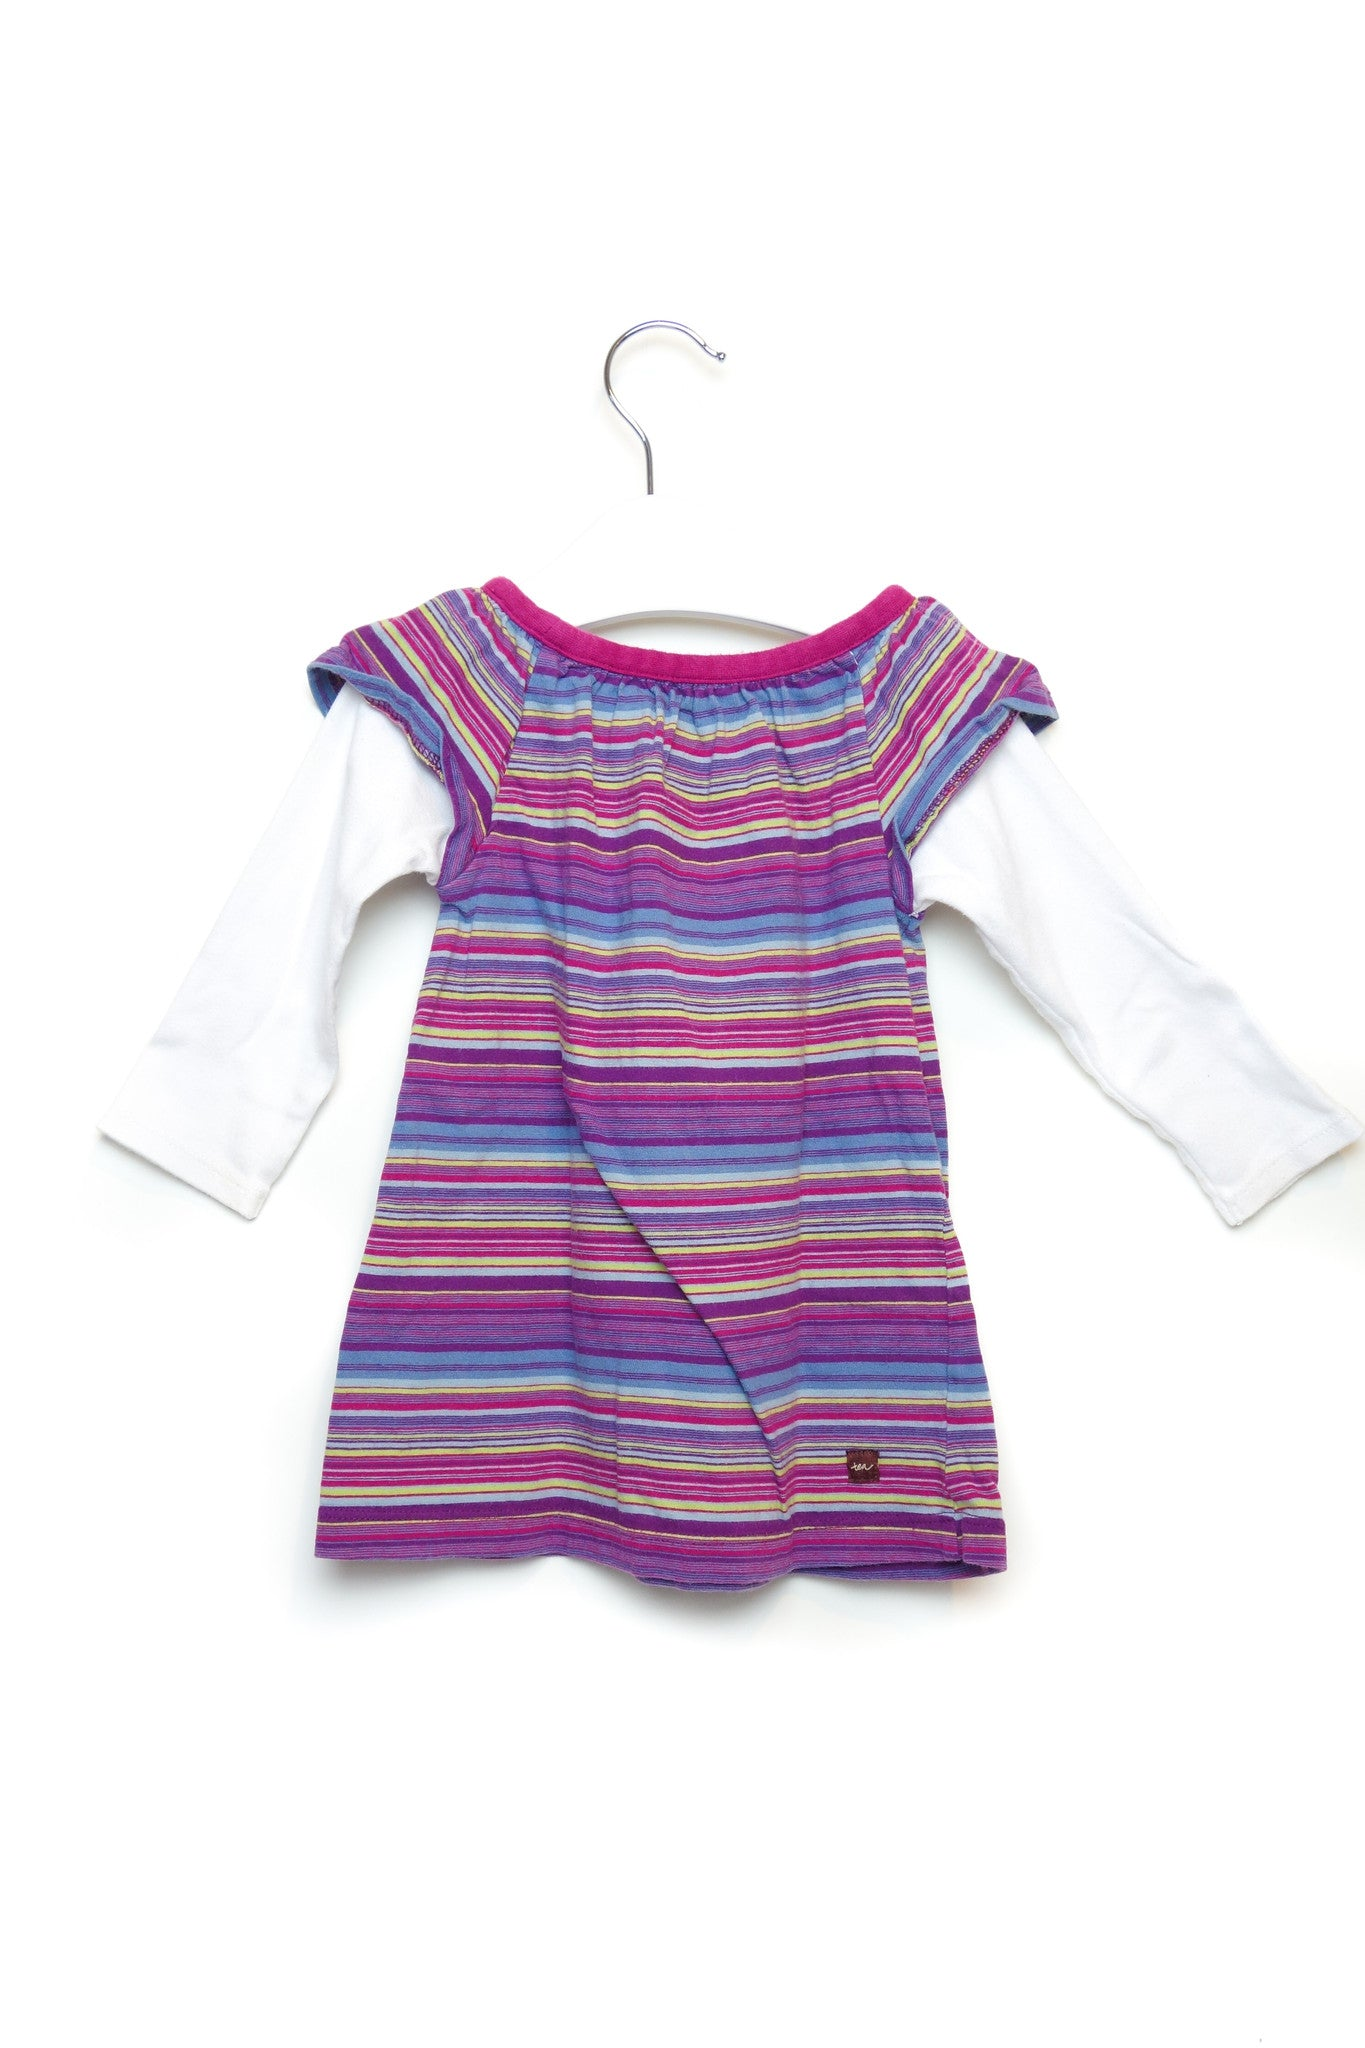 10001401~Tunic 6-12M, Tea at Retykle - Online Baby & Kids Clothing Up to 90% Off